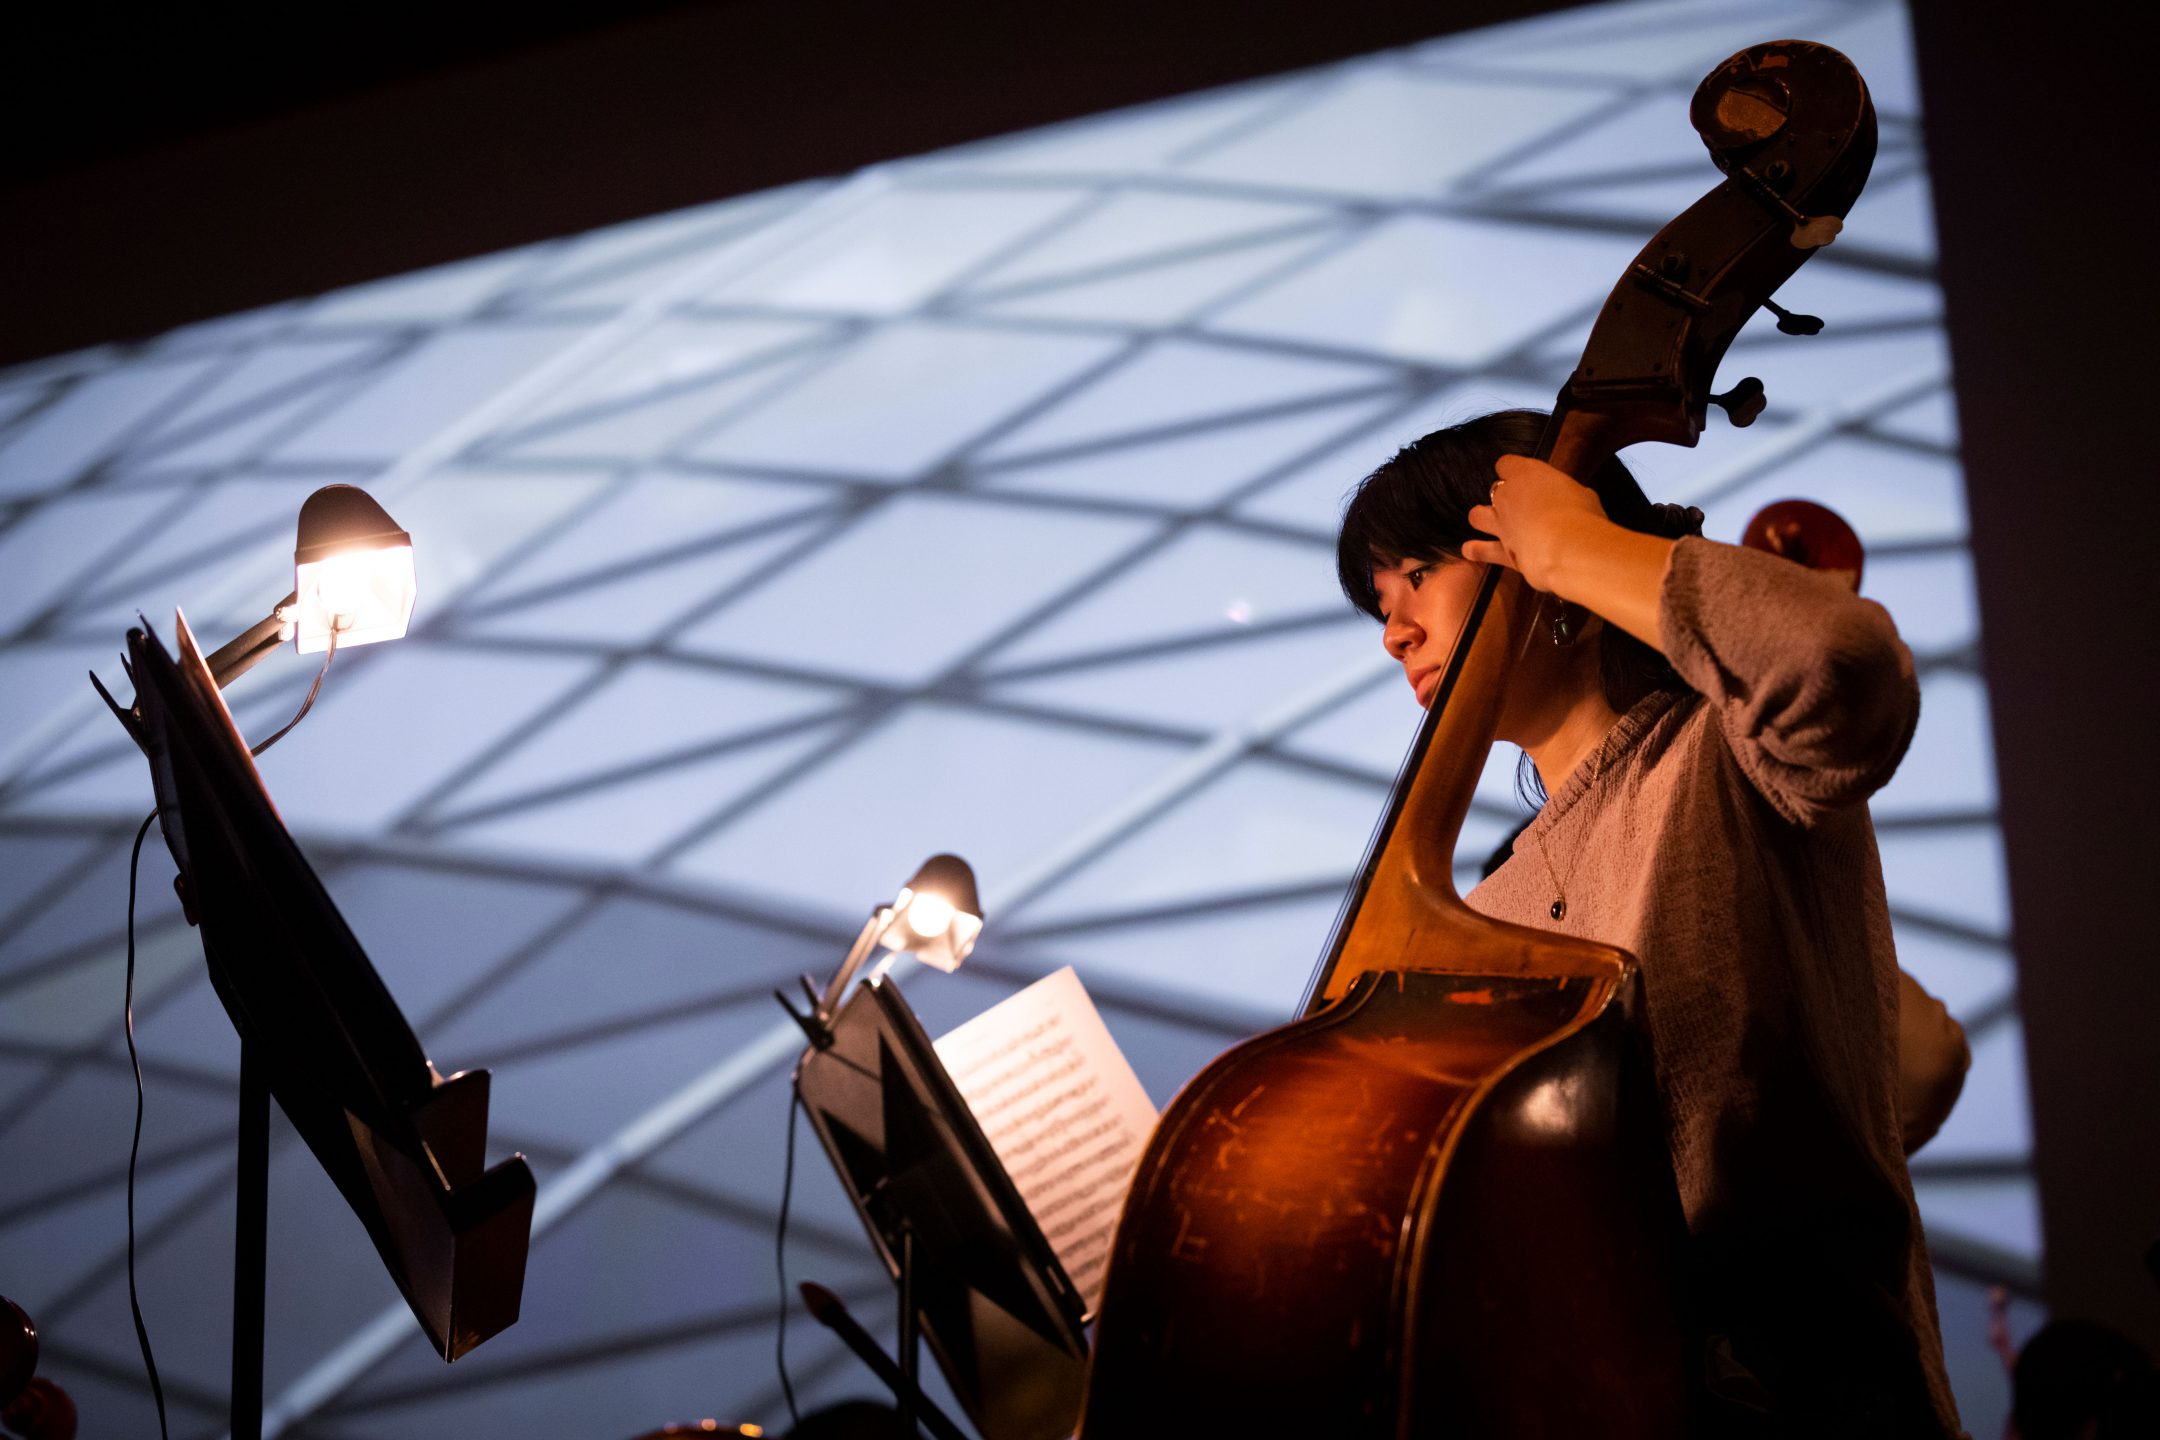 A student playing the upright bass rehearses at the Performing Arts Center at Cal Poly in front of a large-screen projection